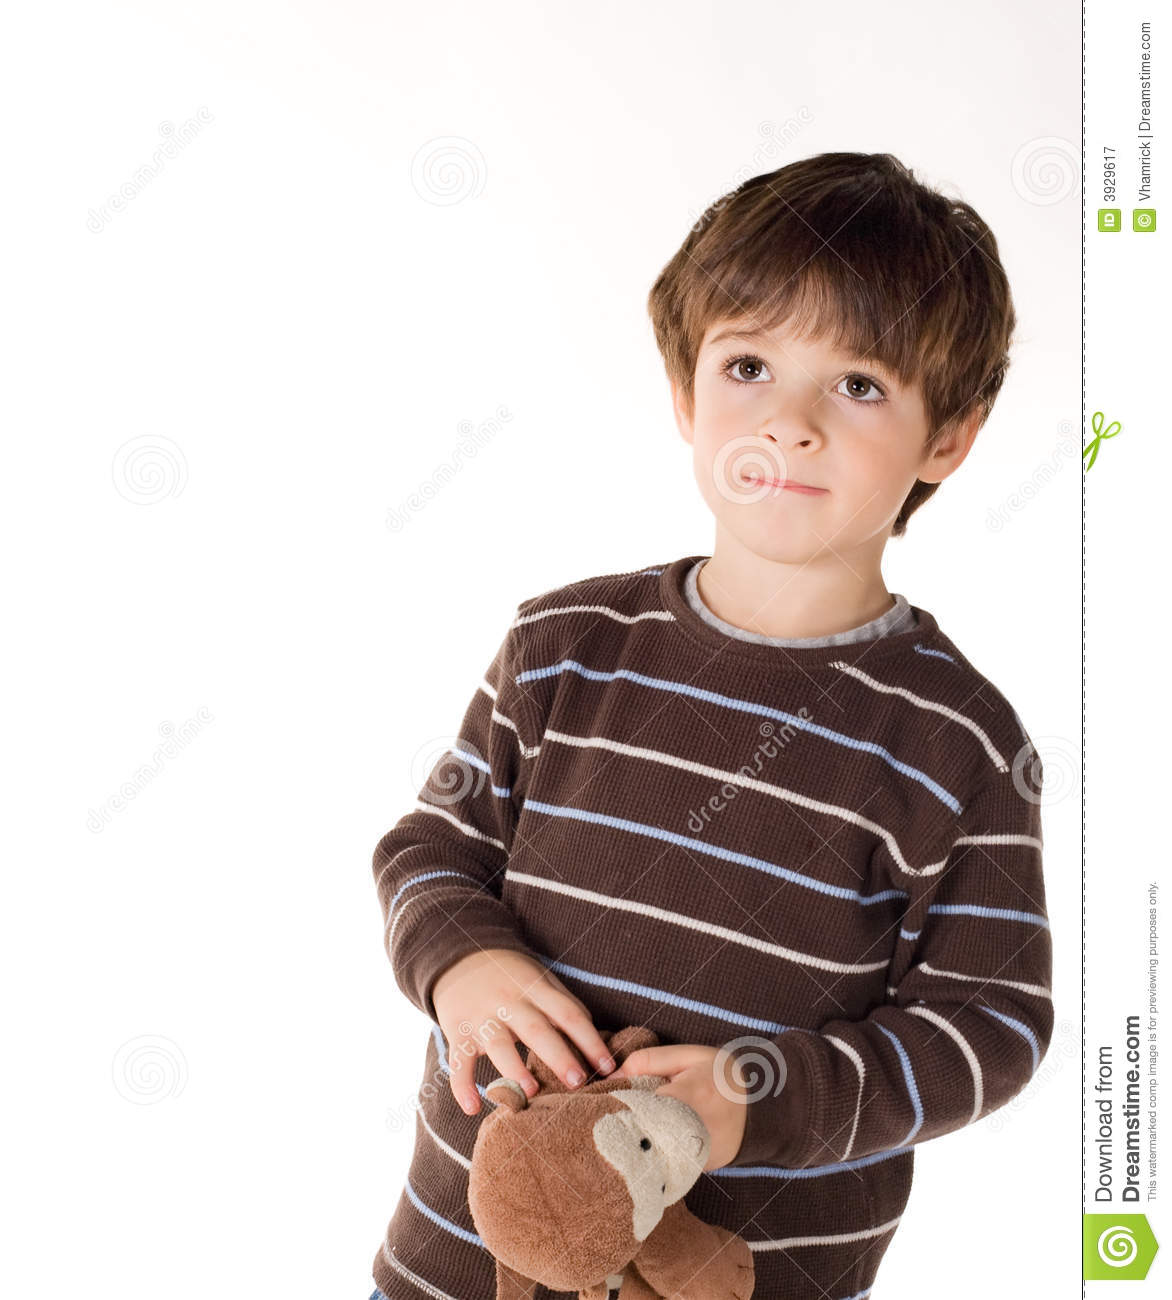 Toddler boy with brown hair and brown eyes